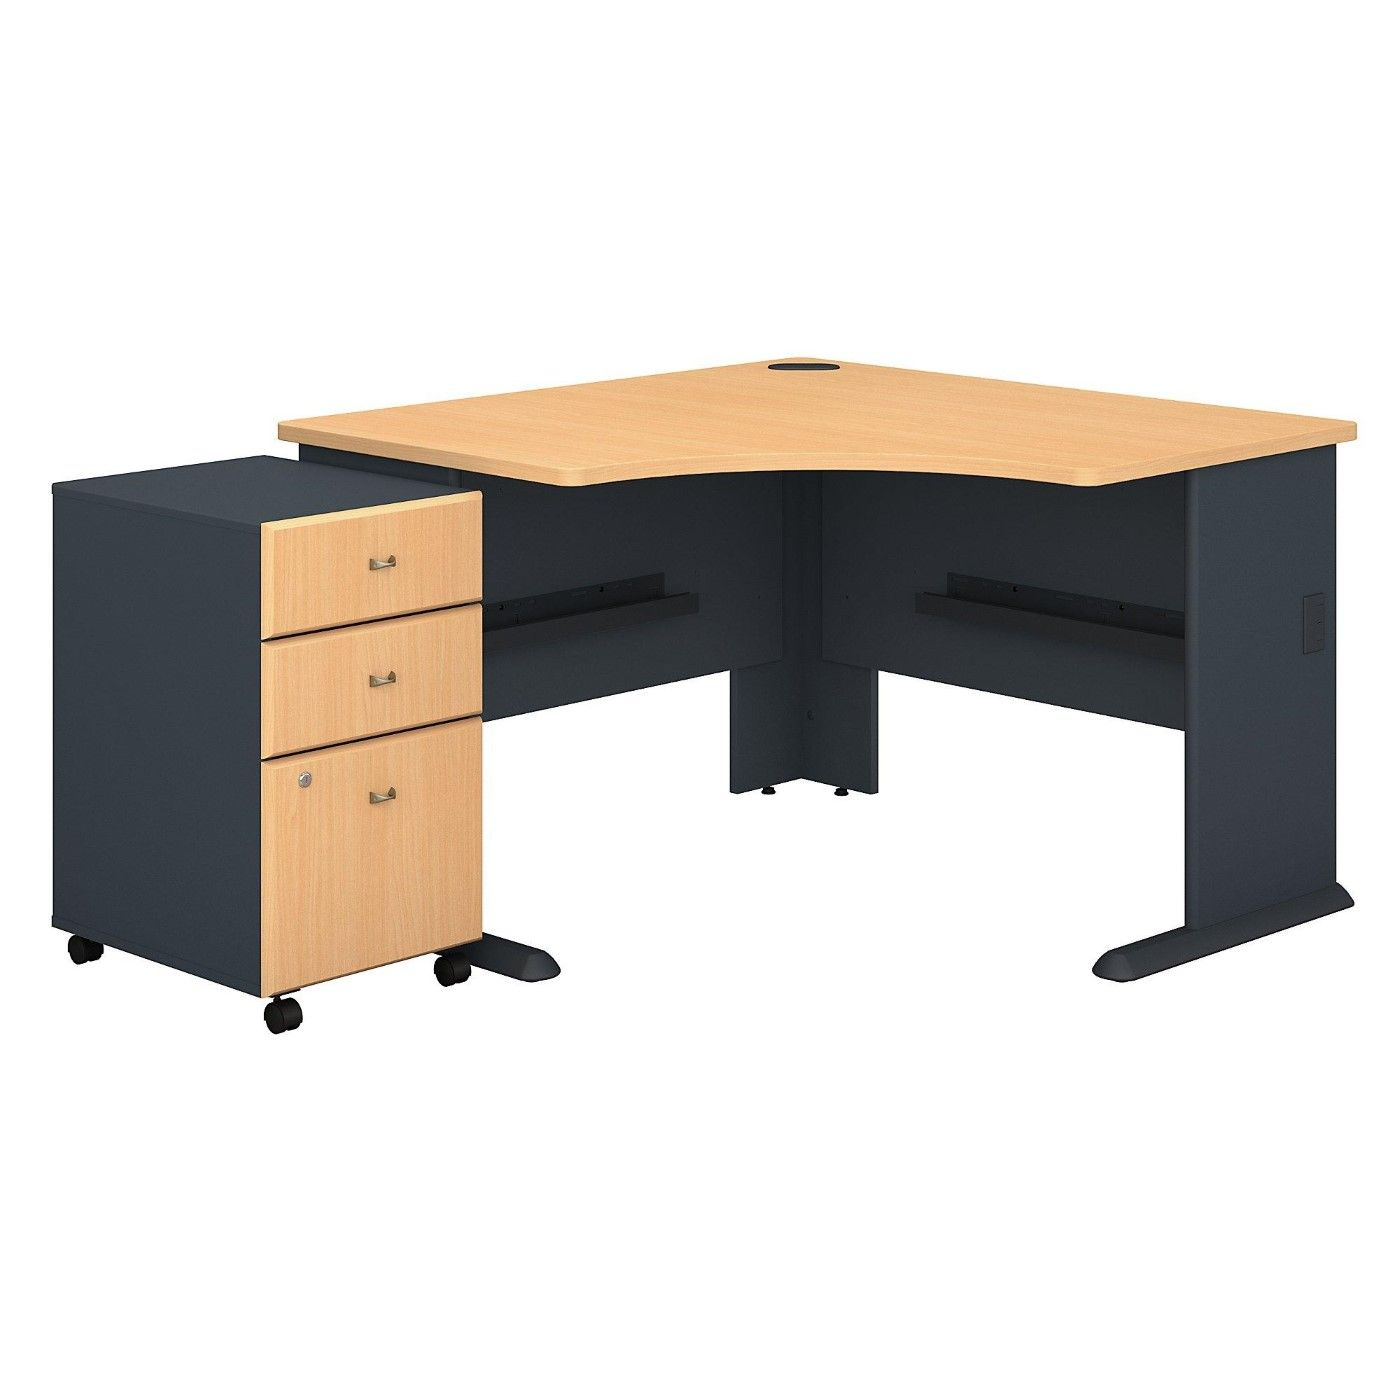 <font color=#c60><b>BUSH BUSINESS FURNITURE SERIES A 48W CORNER DESK WITH MOBILE FILE CABINET EH-SRA035BESU. FREE SHIPPING</font></b></font></b>